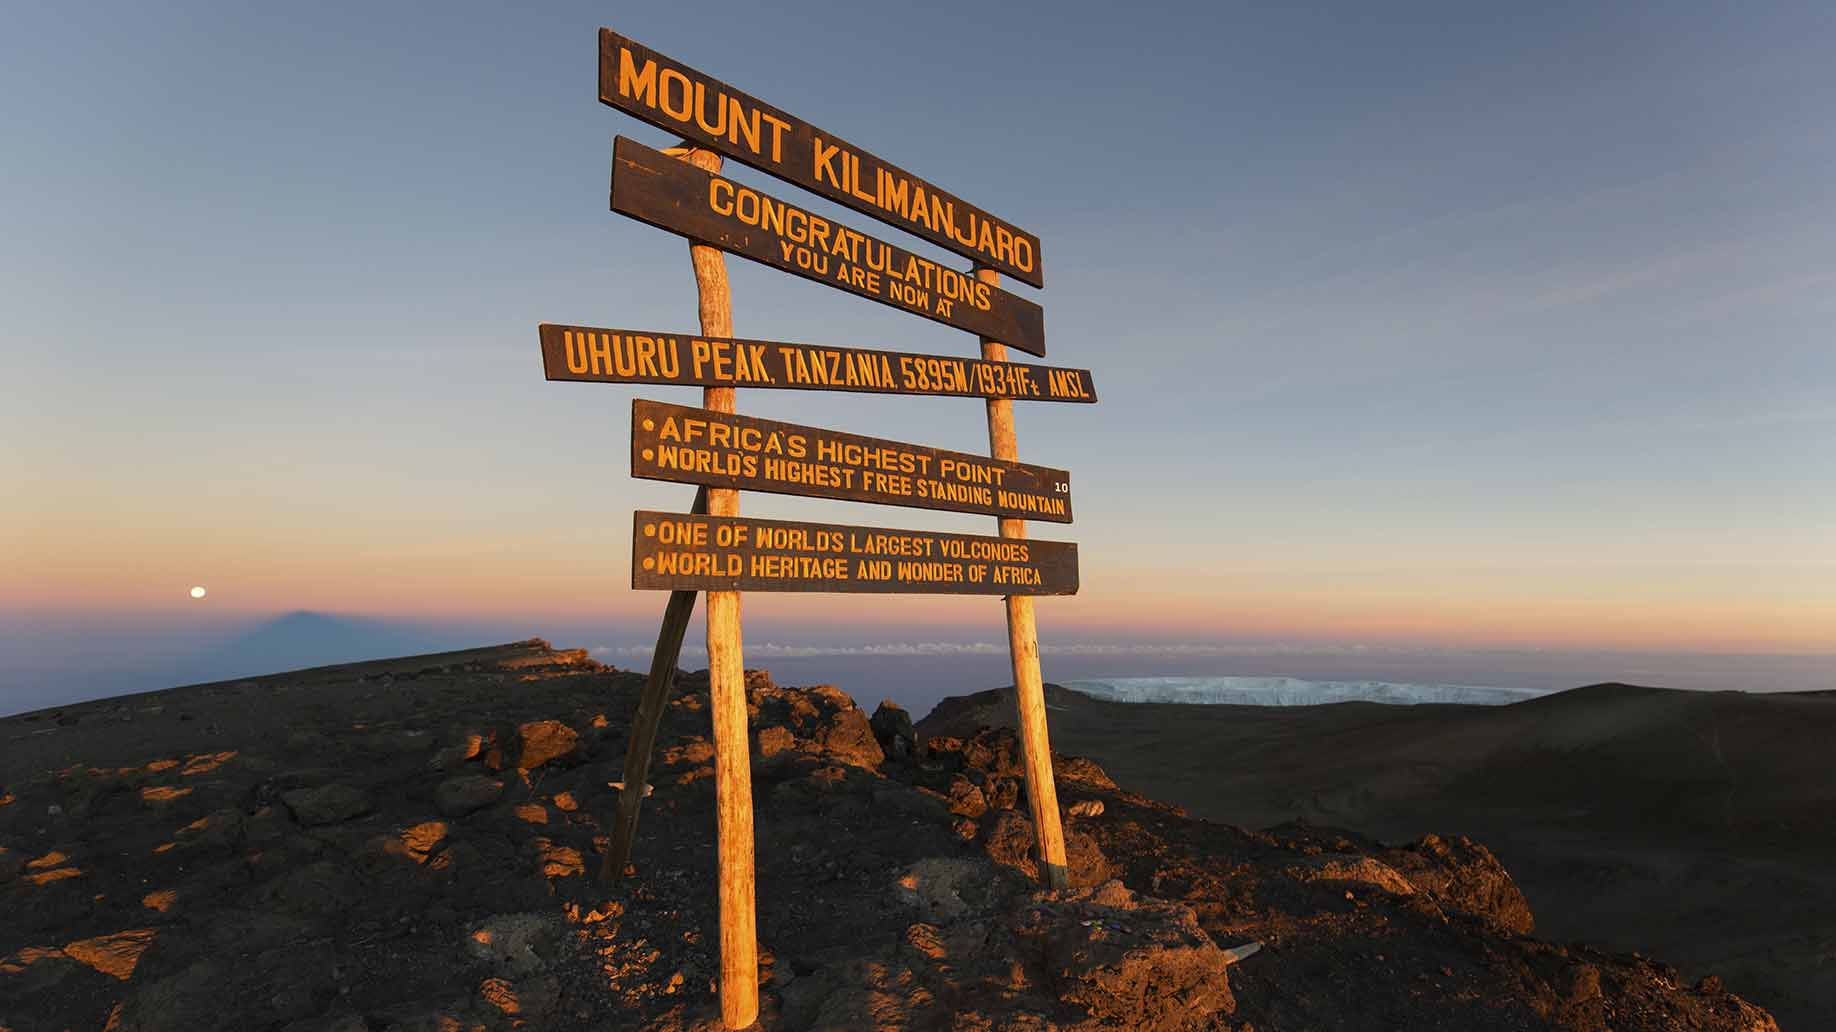 mount kilimanjaro summit sign